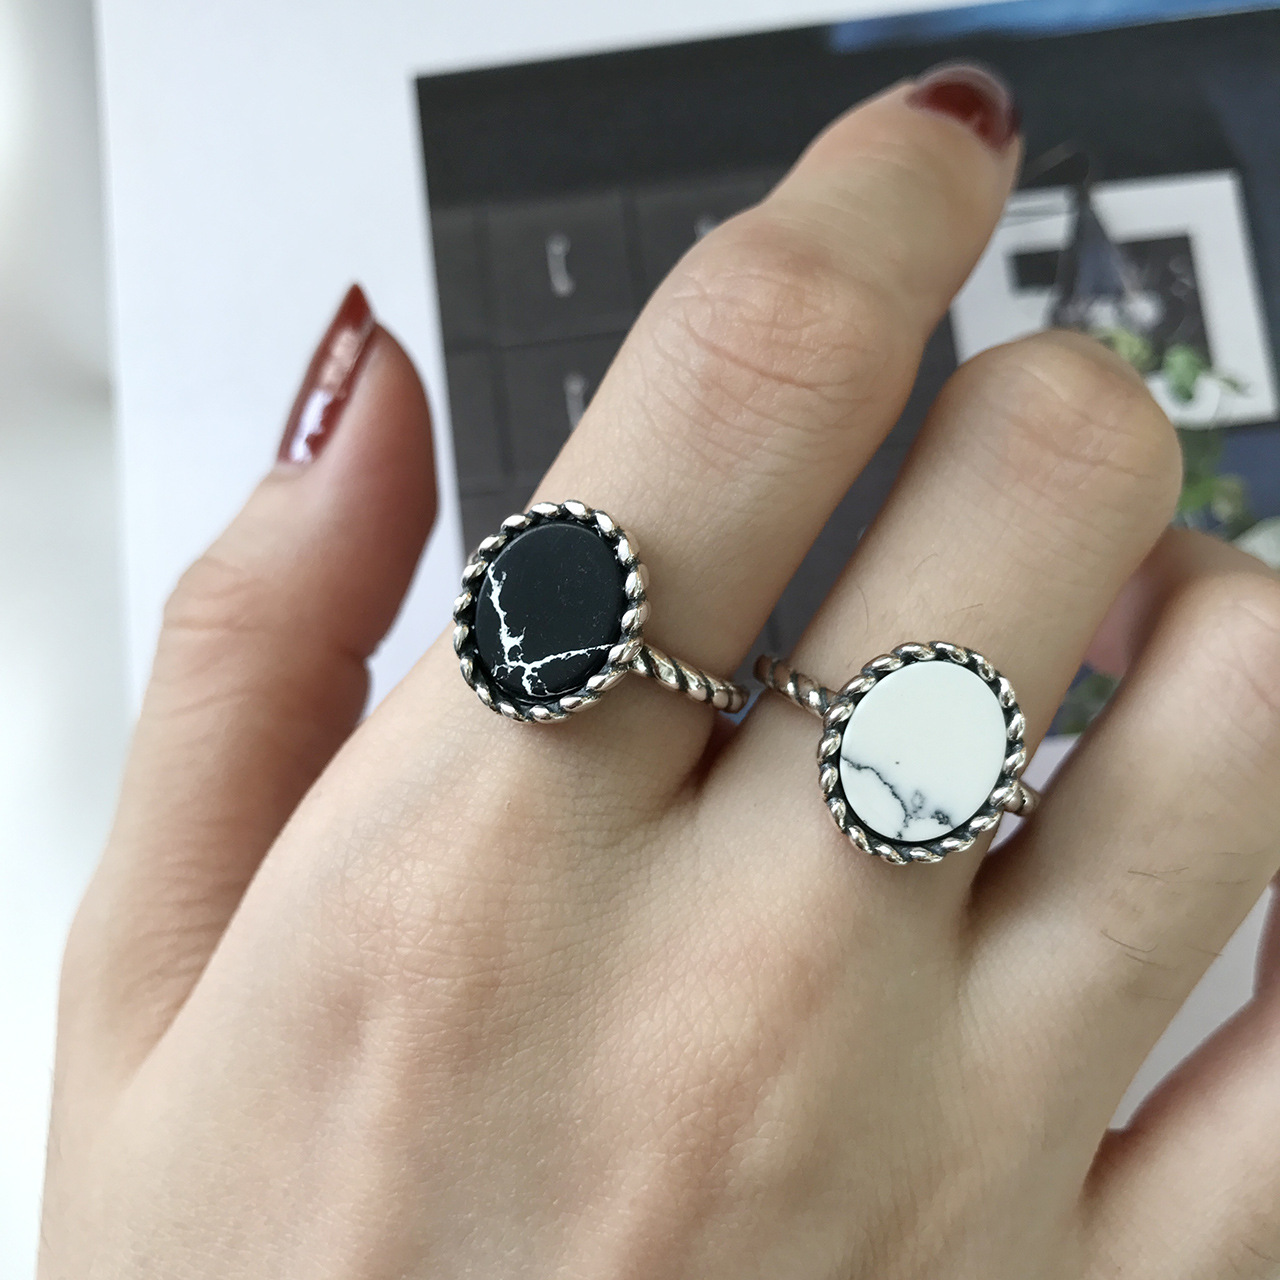 S925 Sterling Silver Ring Marbling Black and White Pine Stone Large Cake Ring Do Old Personality Korean Opening Element Silver(China)